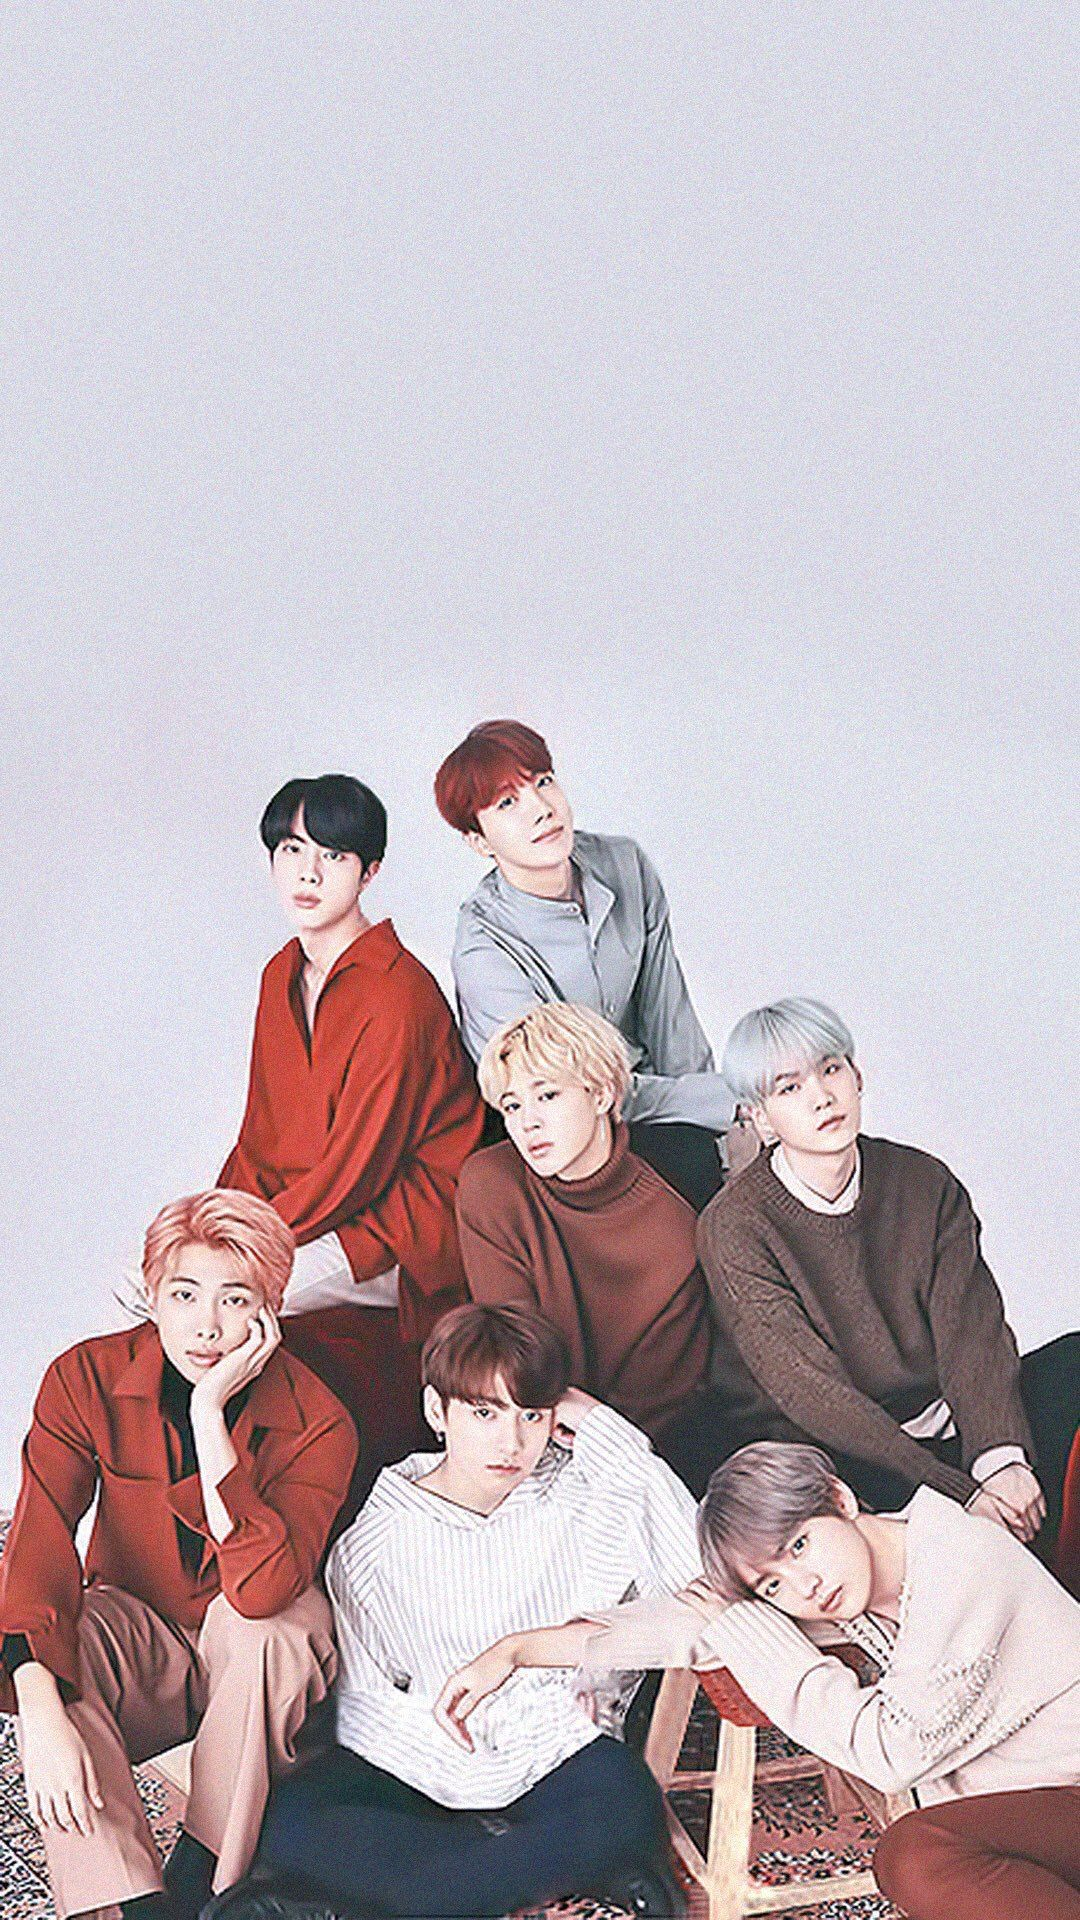 Download Awesome Bts 2018 Wallpapers Complete Members Top Free Awesome Backgrounds In 2020 Bts Wallpaper Cute Wallpapers Samsung Wallpaper